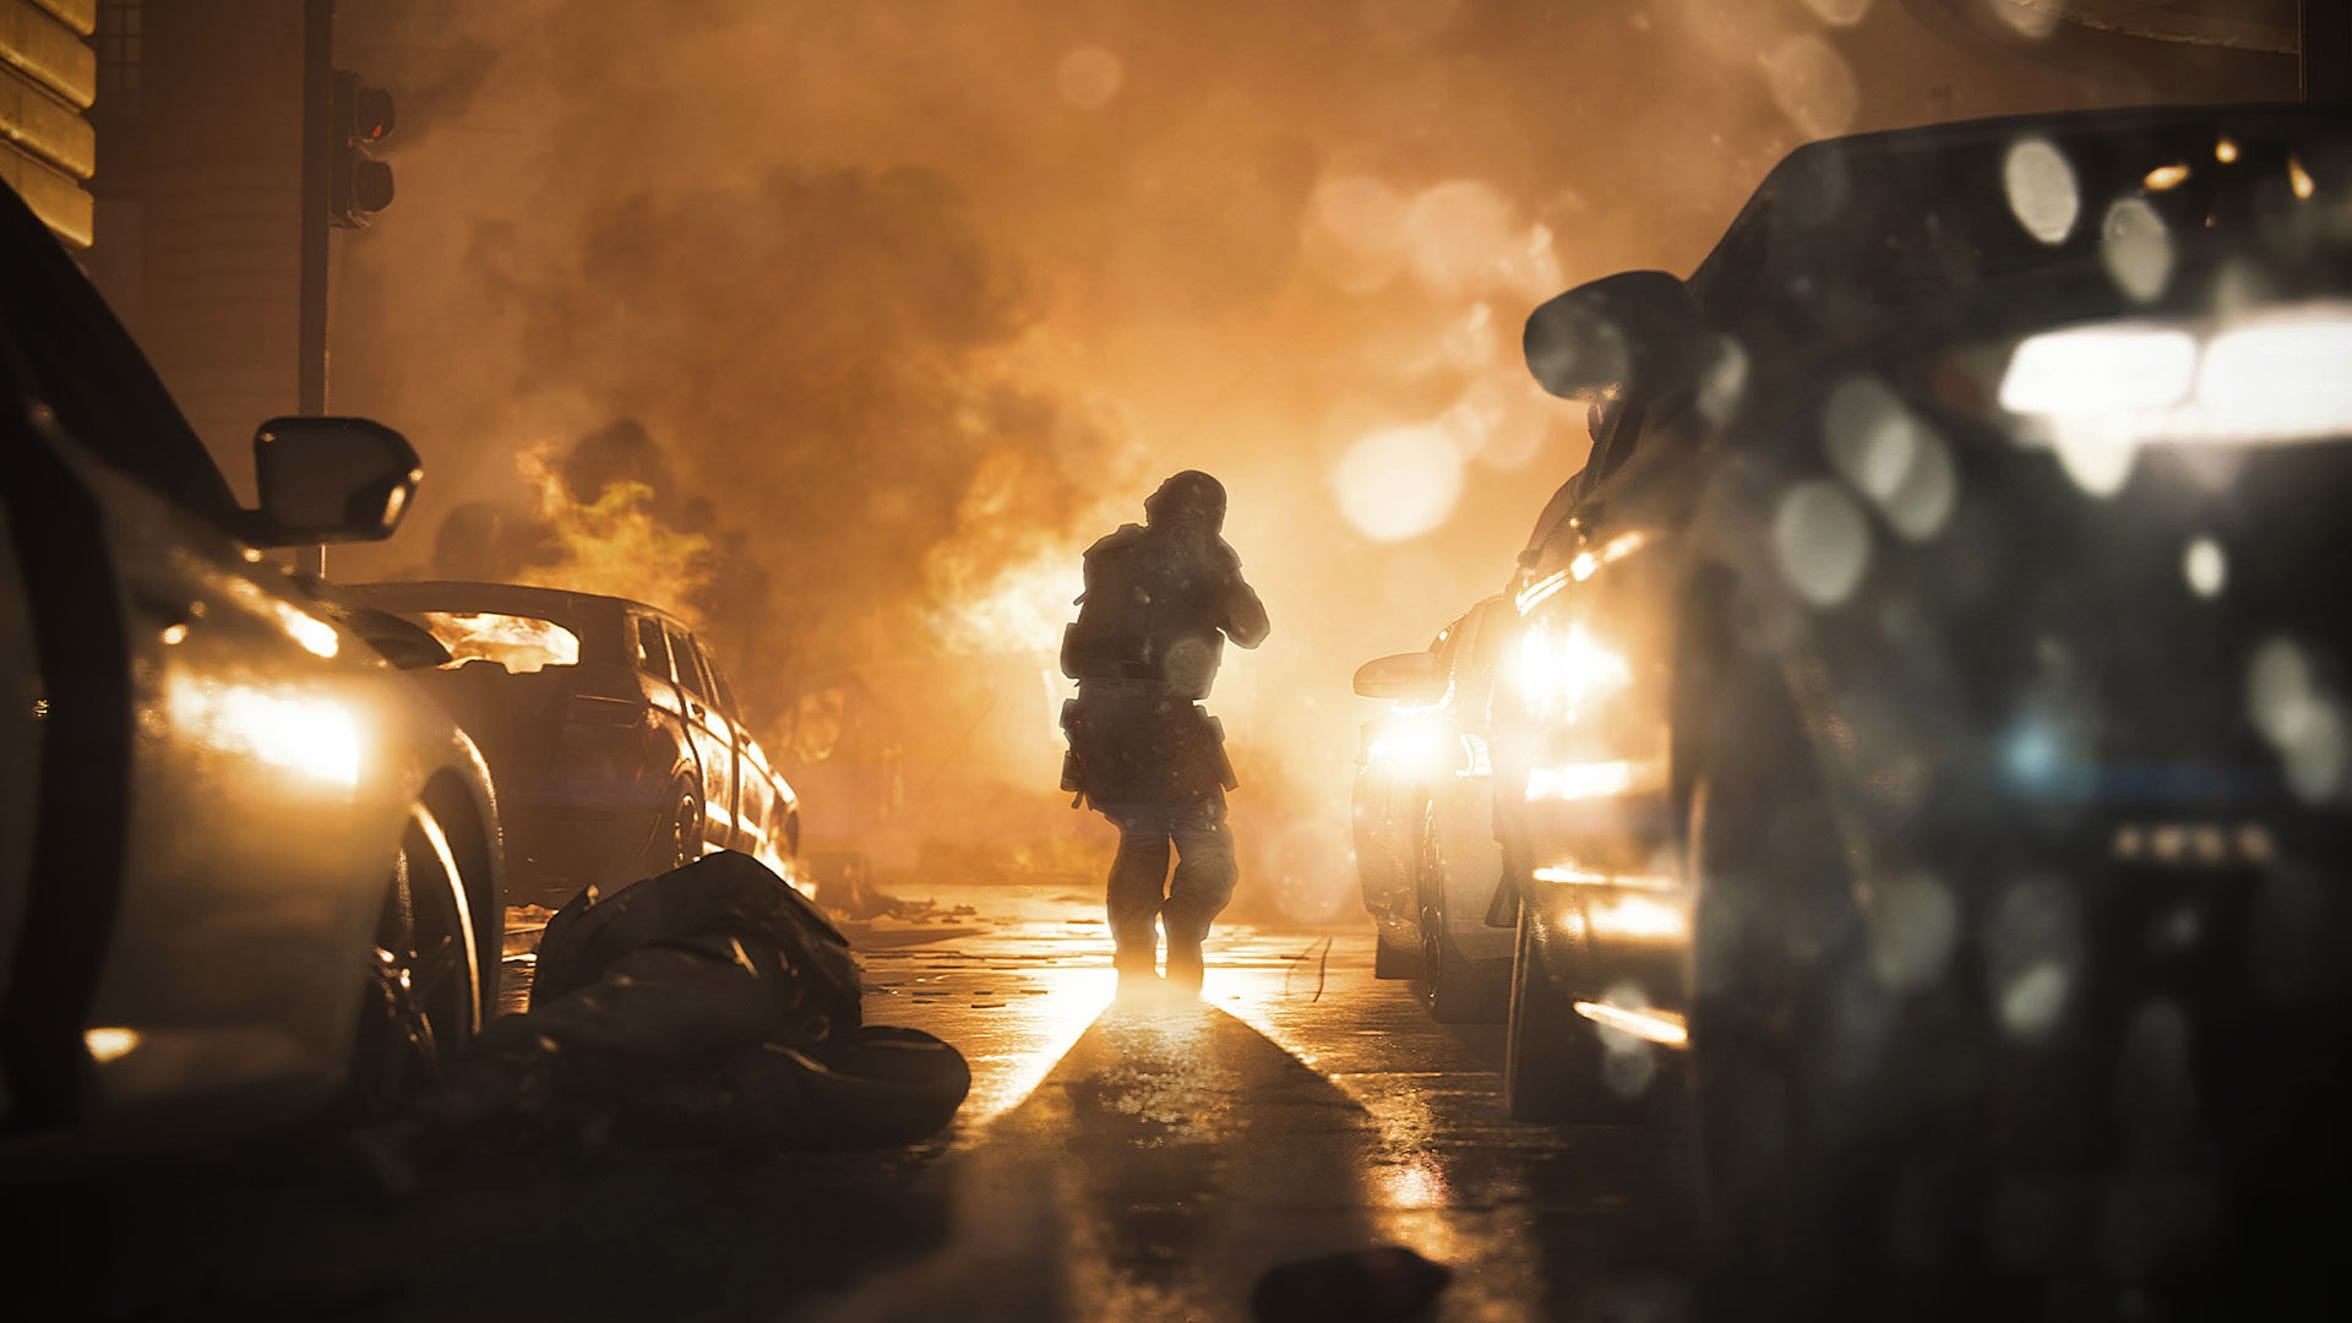 Call of Duty: Modern Warfare for PC, PS4 and Xbox One.